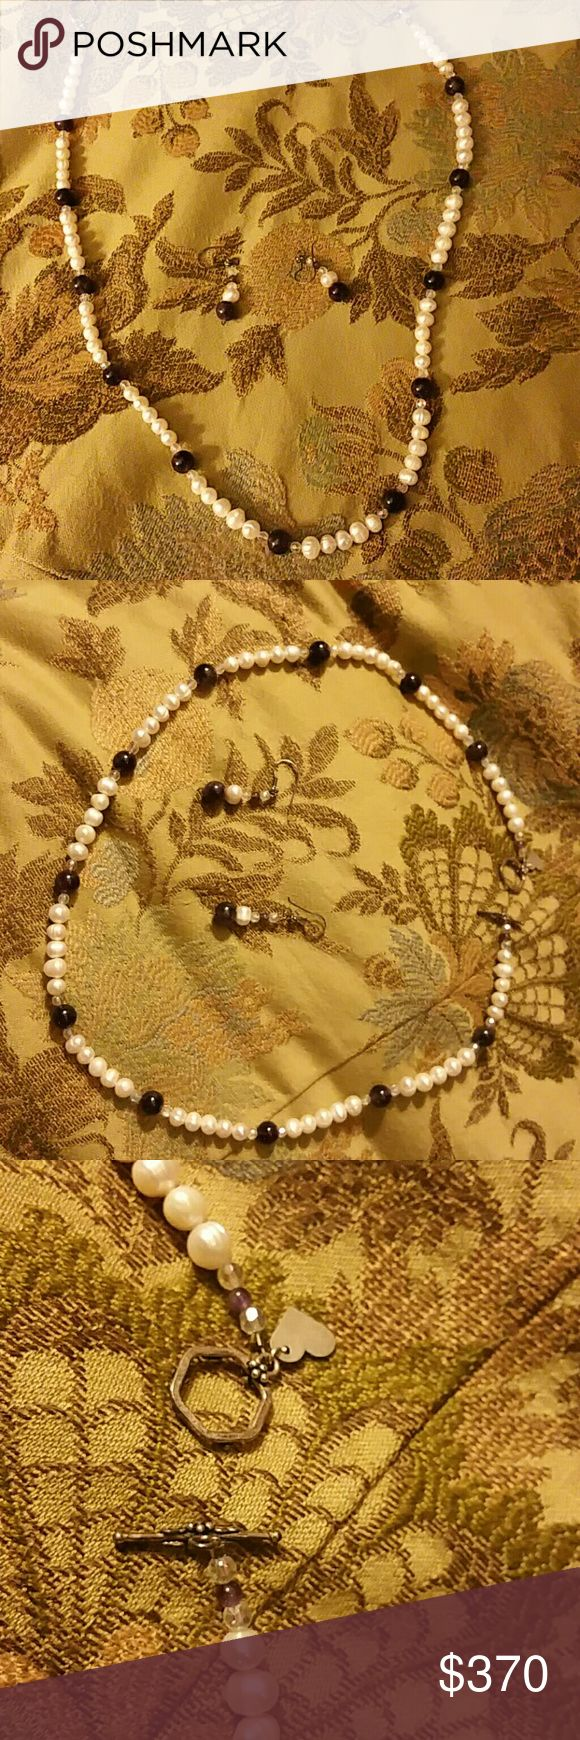 Cultured pearl, purple stone, crystals necklace Cultured pearls, purple stones, crystals necklace and earring... never worn!!! Jewelry Necklaces